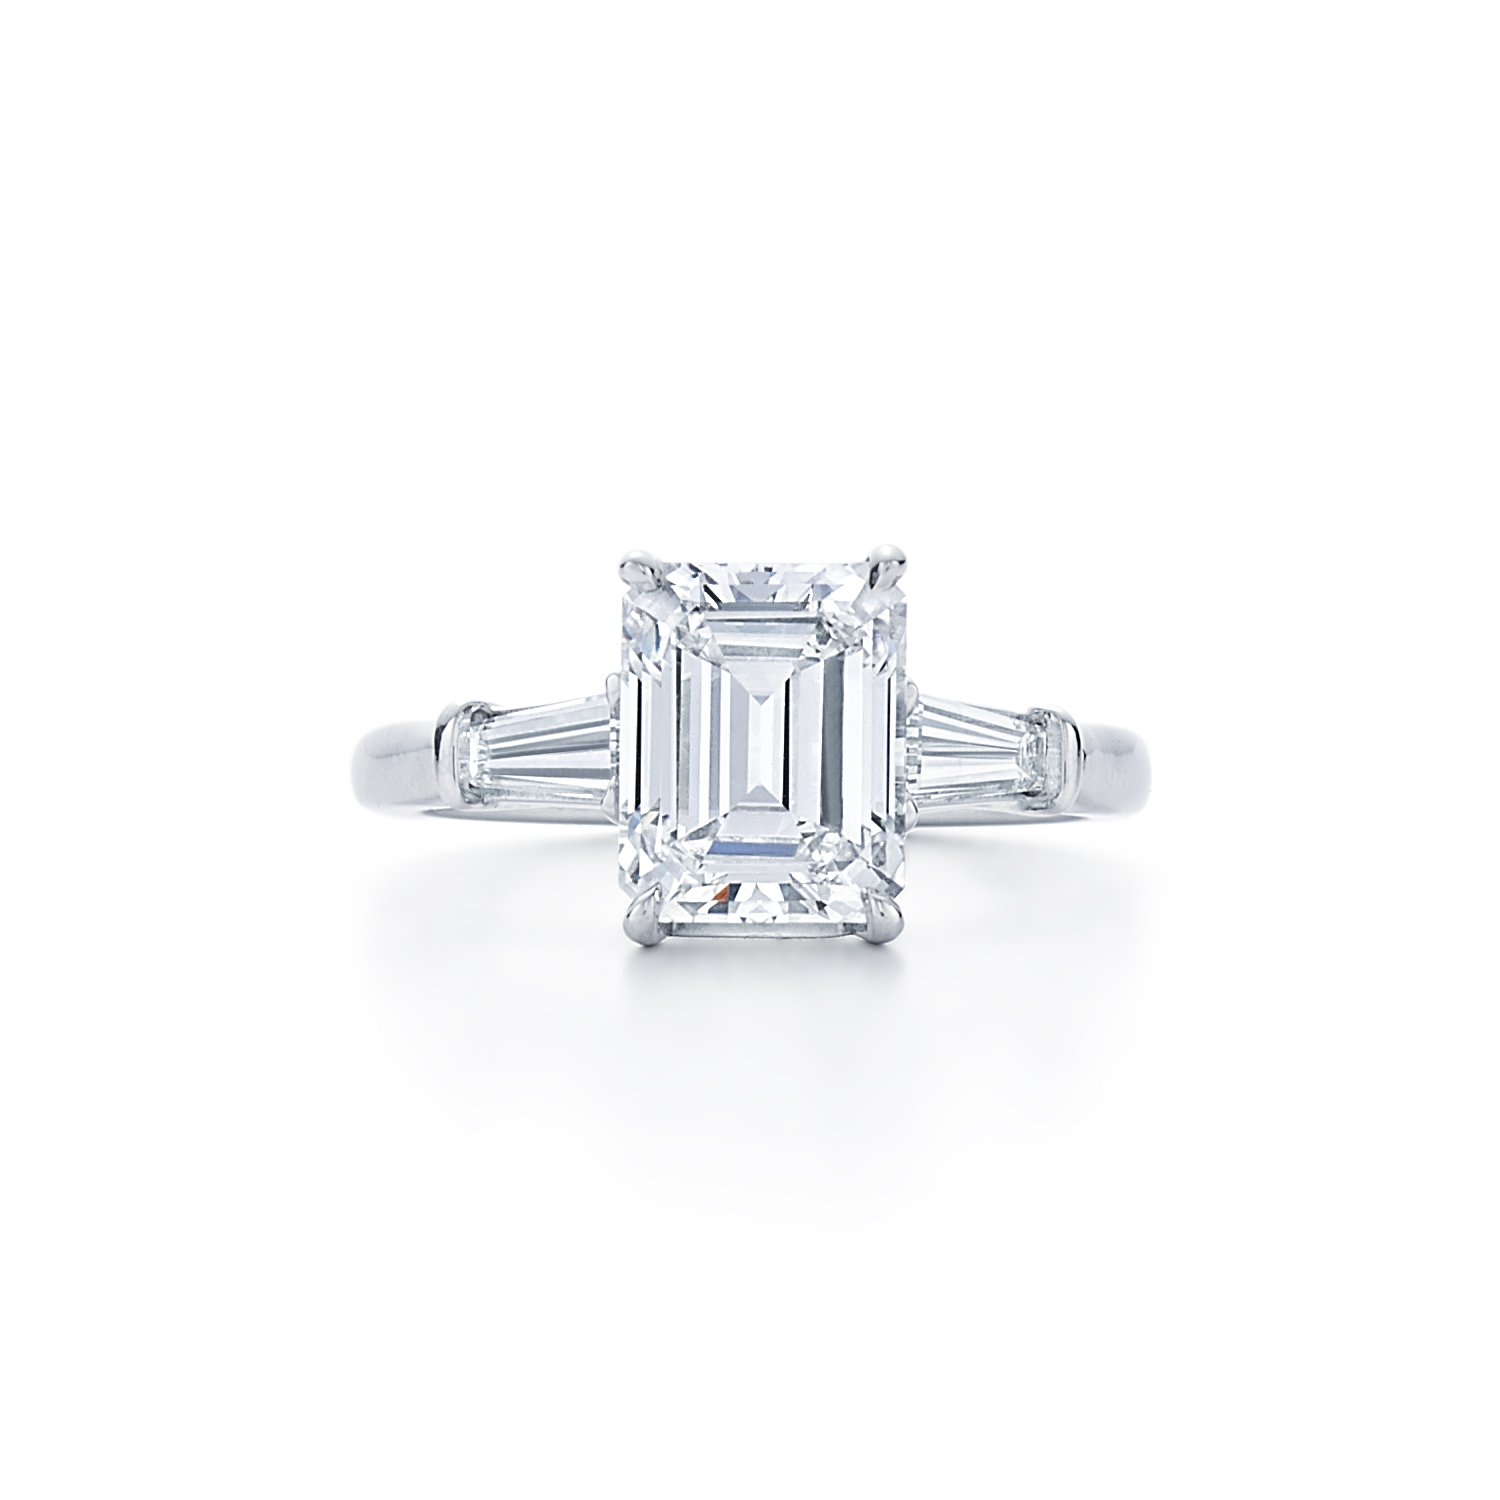 Emerald Cut Diamond Engagement Ring | Dk Gems With Cushion Cut Engagement Rings With Tapered Baguette Side Stones (View 16 of 25)